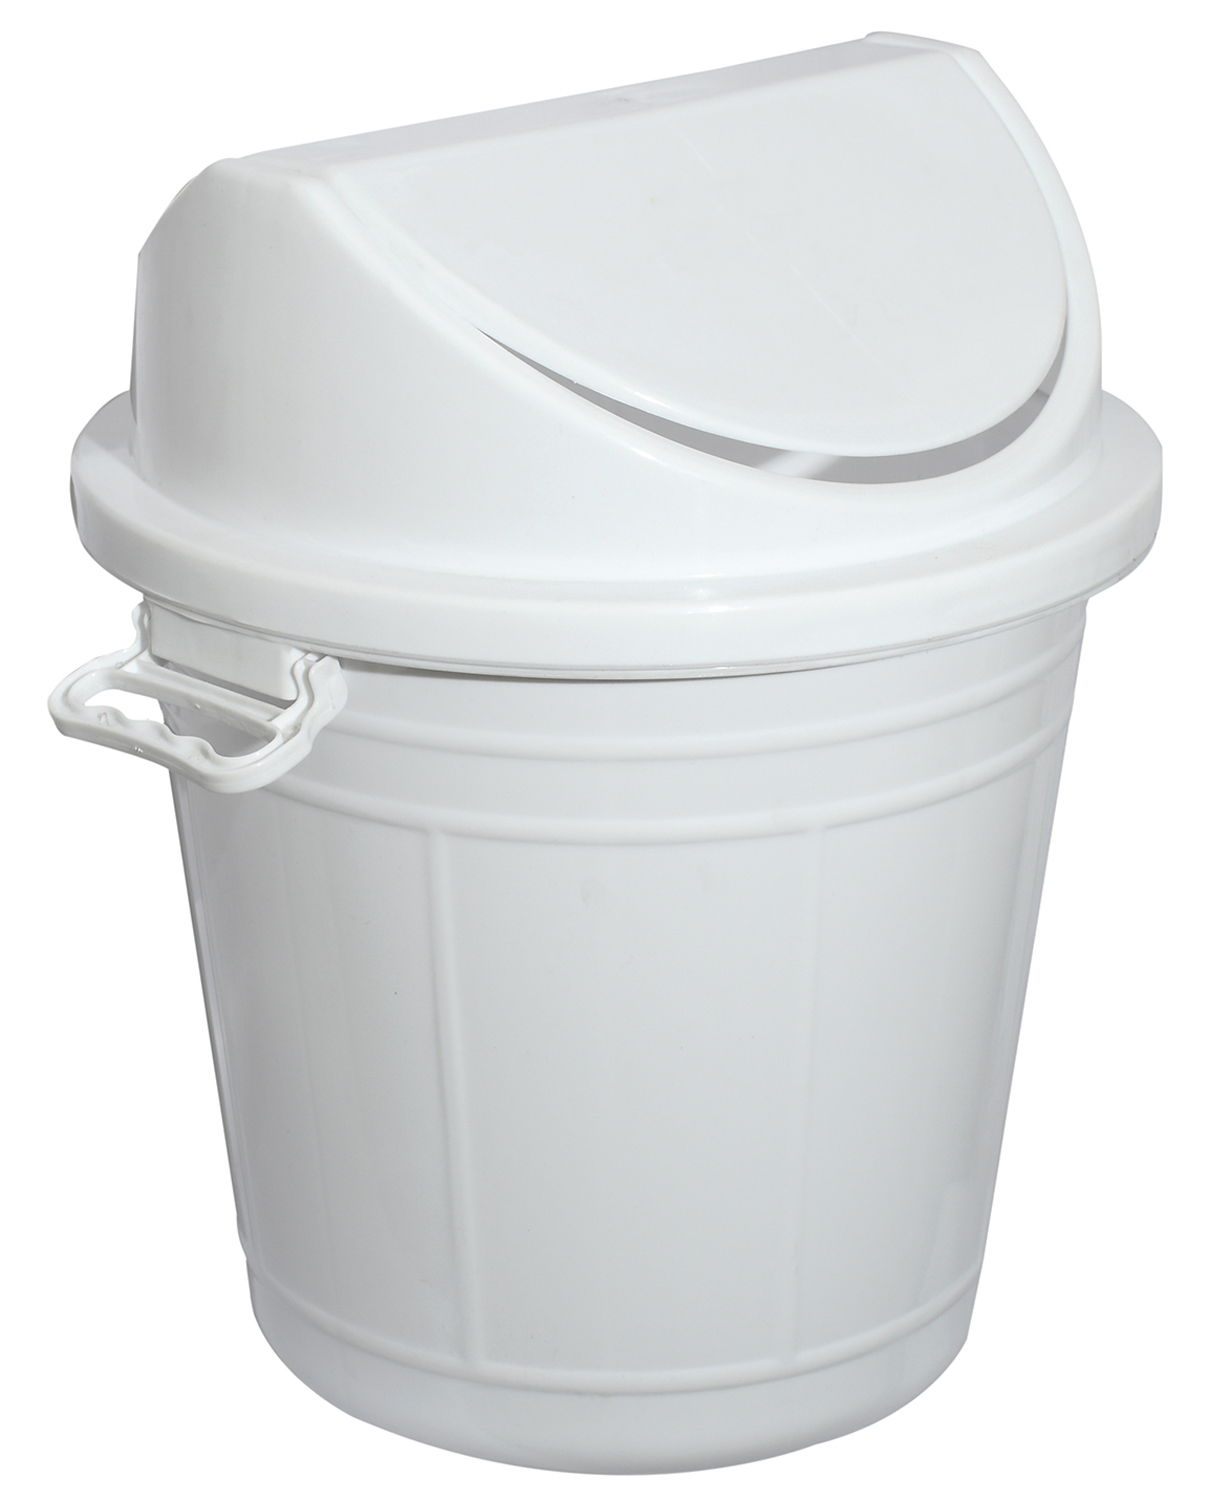 Kuber Industries Plastic Swing Lid Garbage Waste Dustbin for Home, Office, Factory, 30 Liters, Large Size (White) -CTKTC38706